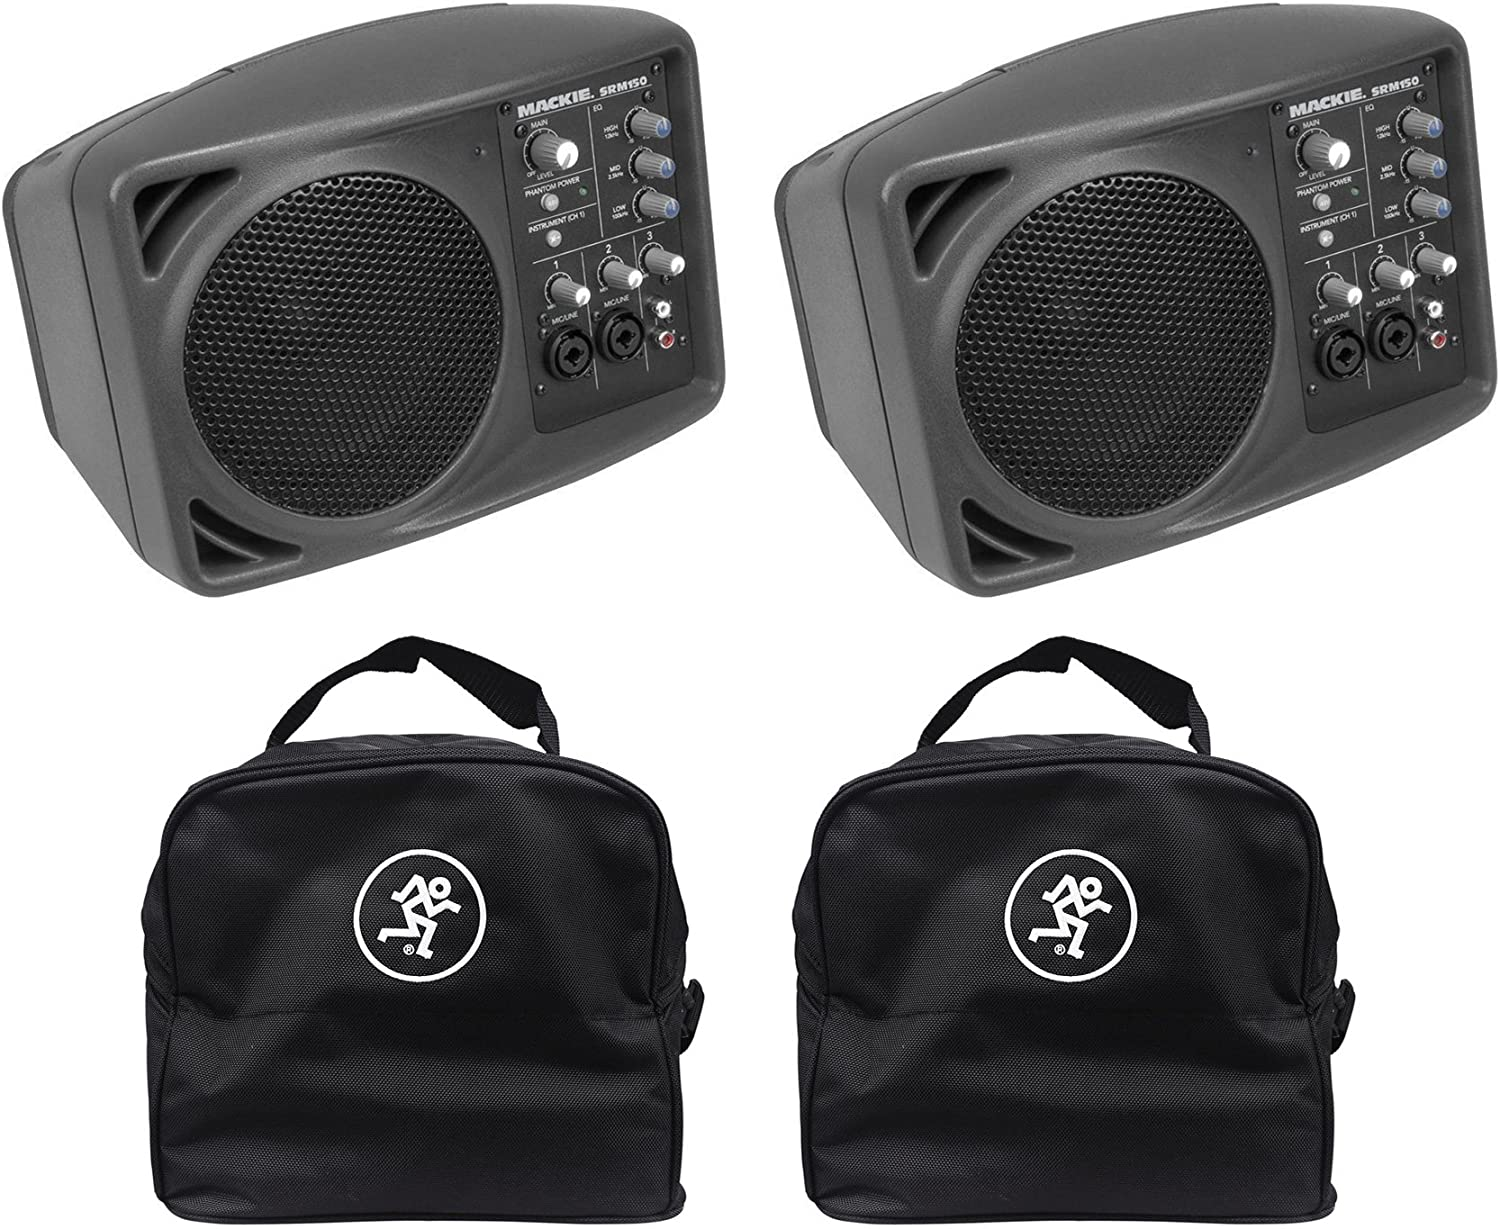 New Mackie Portable Speaker Bag For SRM150